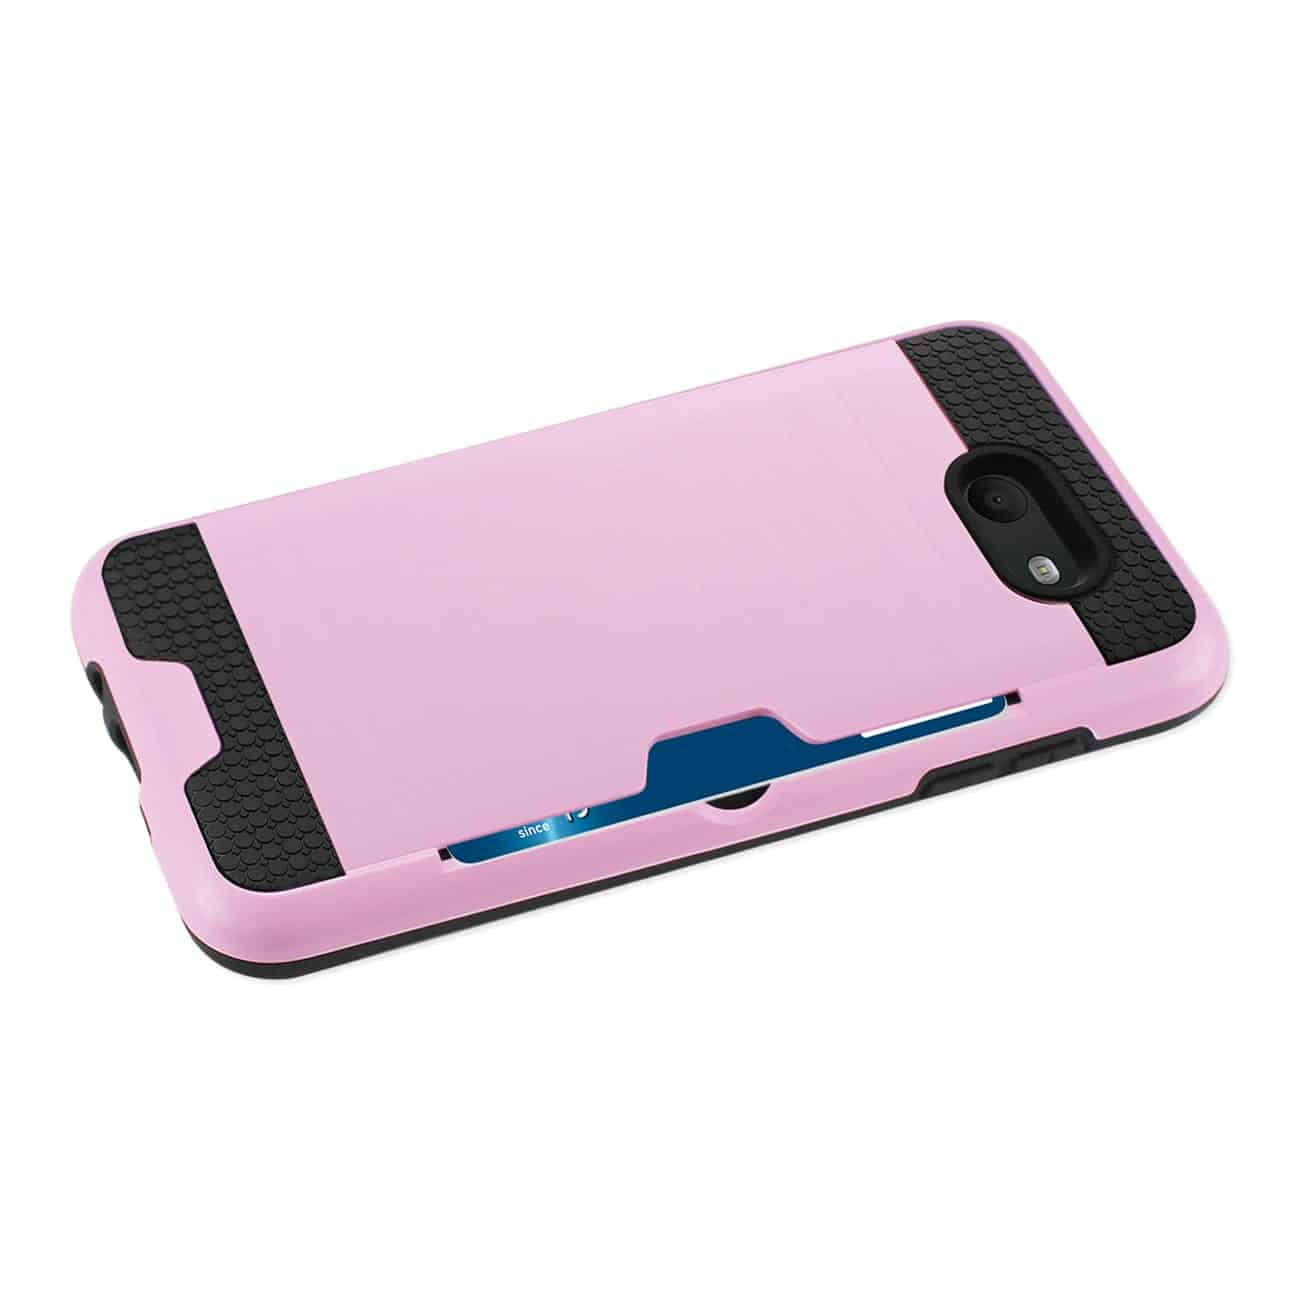 SAMSUNG GALAXY J7 V (2017) SLIM ARMOR HYBRID CASE WITH CARD HOLDER IN PINK